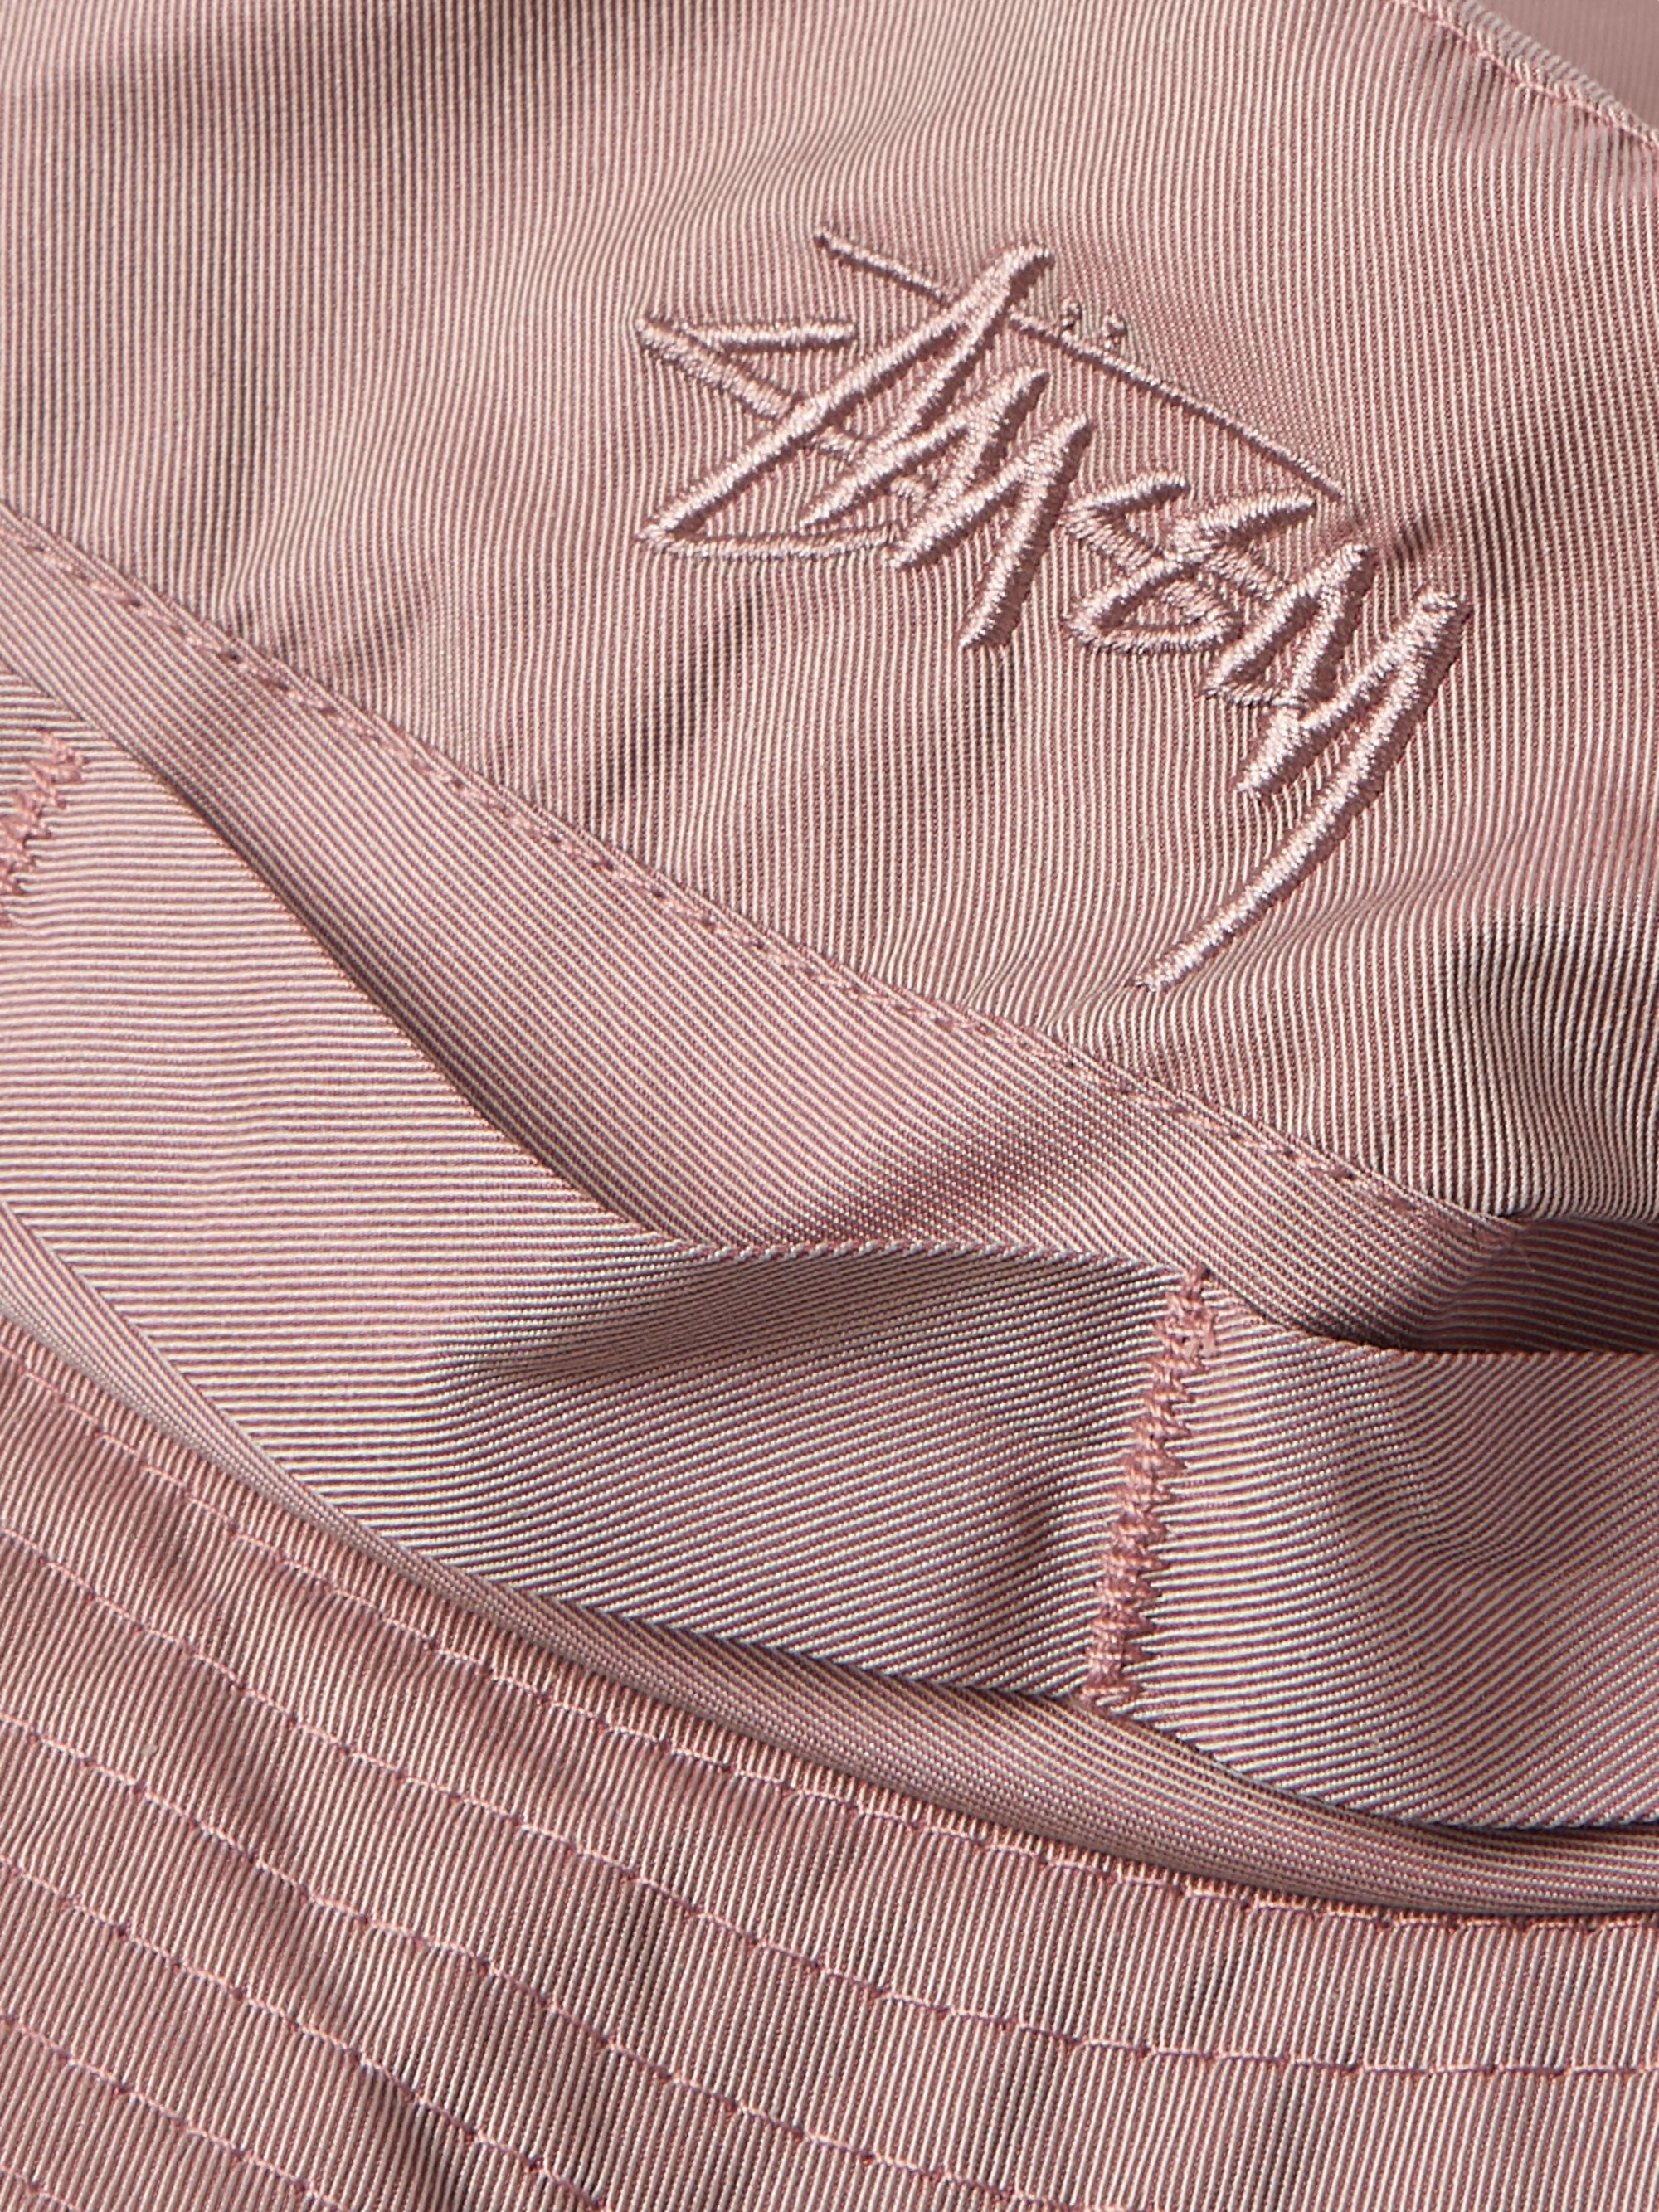 Stüssy Twill Bucket Hat